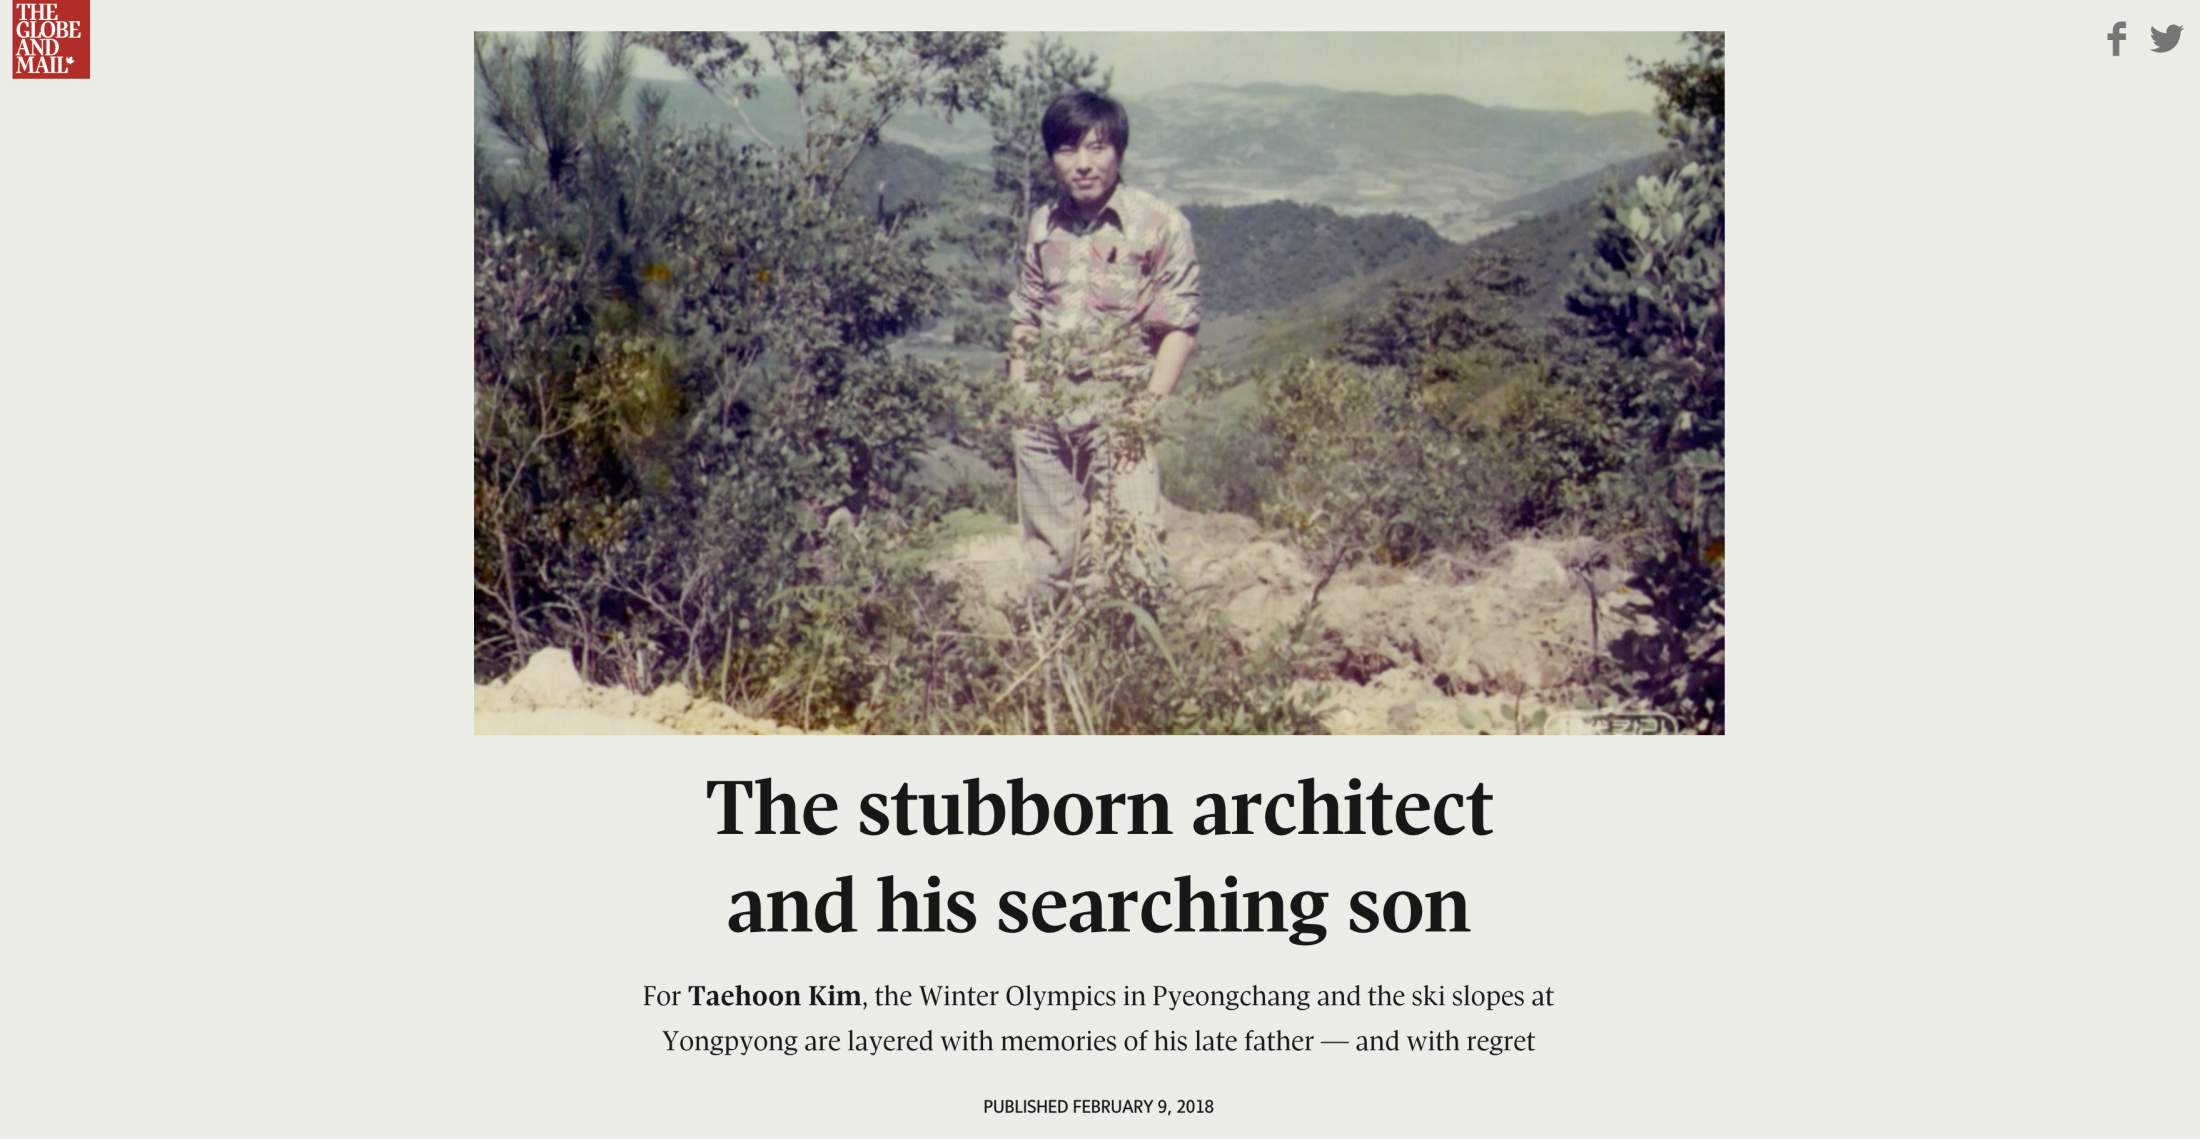 The Stubborn Architect and his Searching Son (The Globe and Mail)